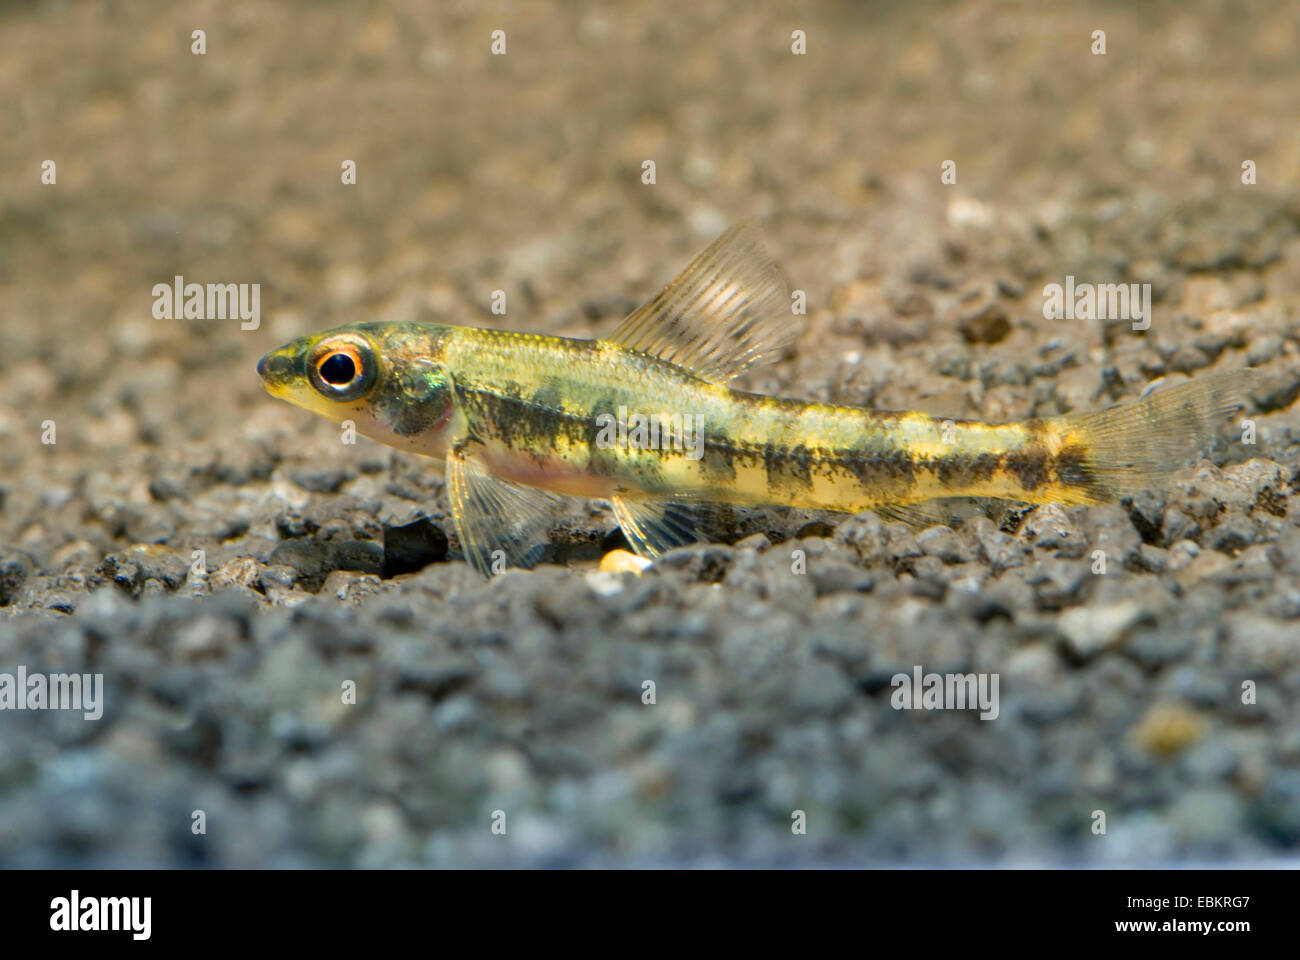 African Ground tetra (Nannocharax fasciatus), on the ground - Stock Image